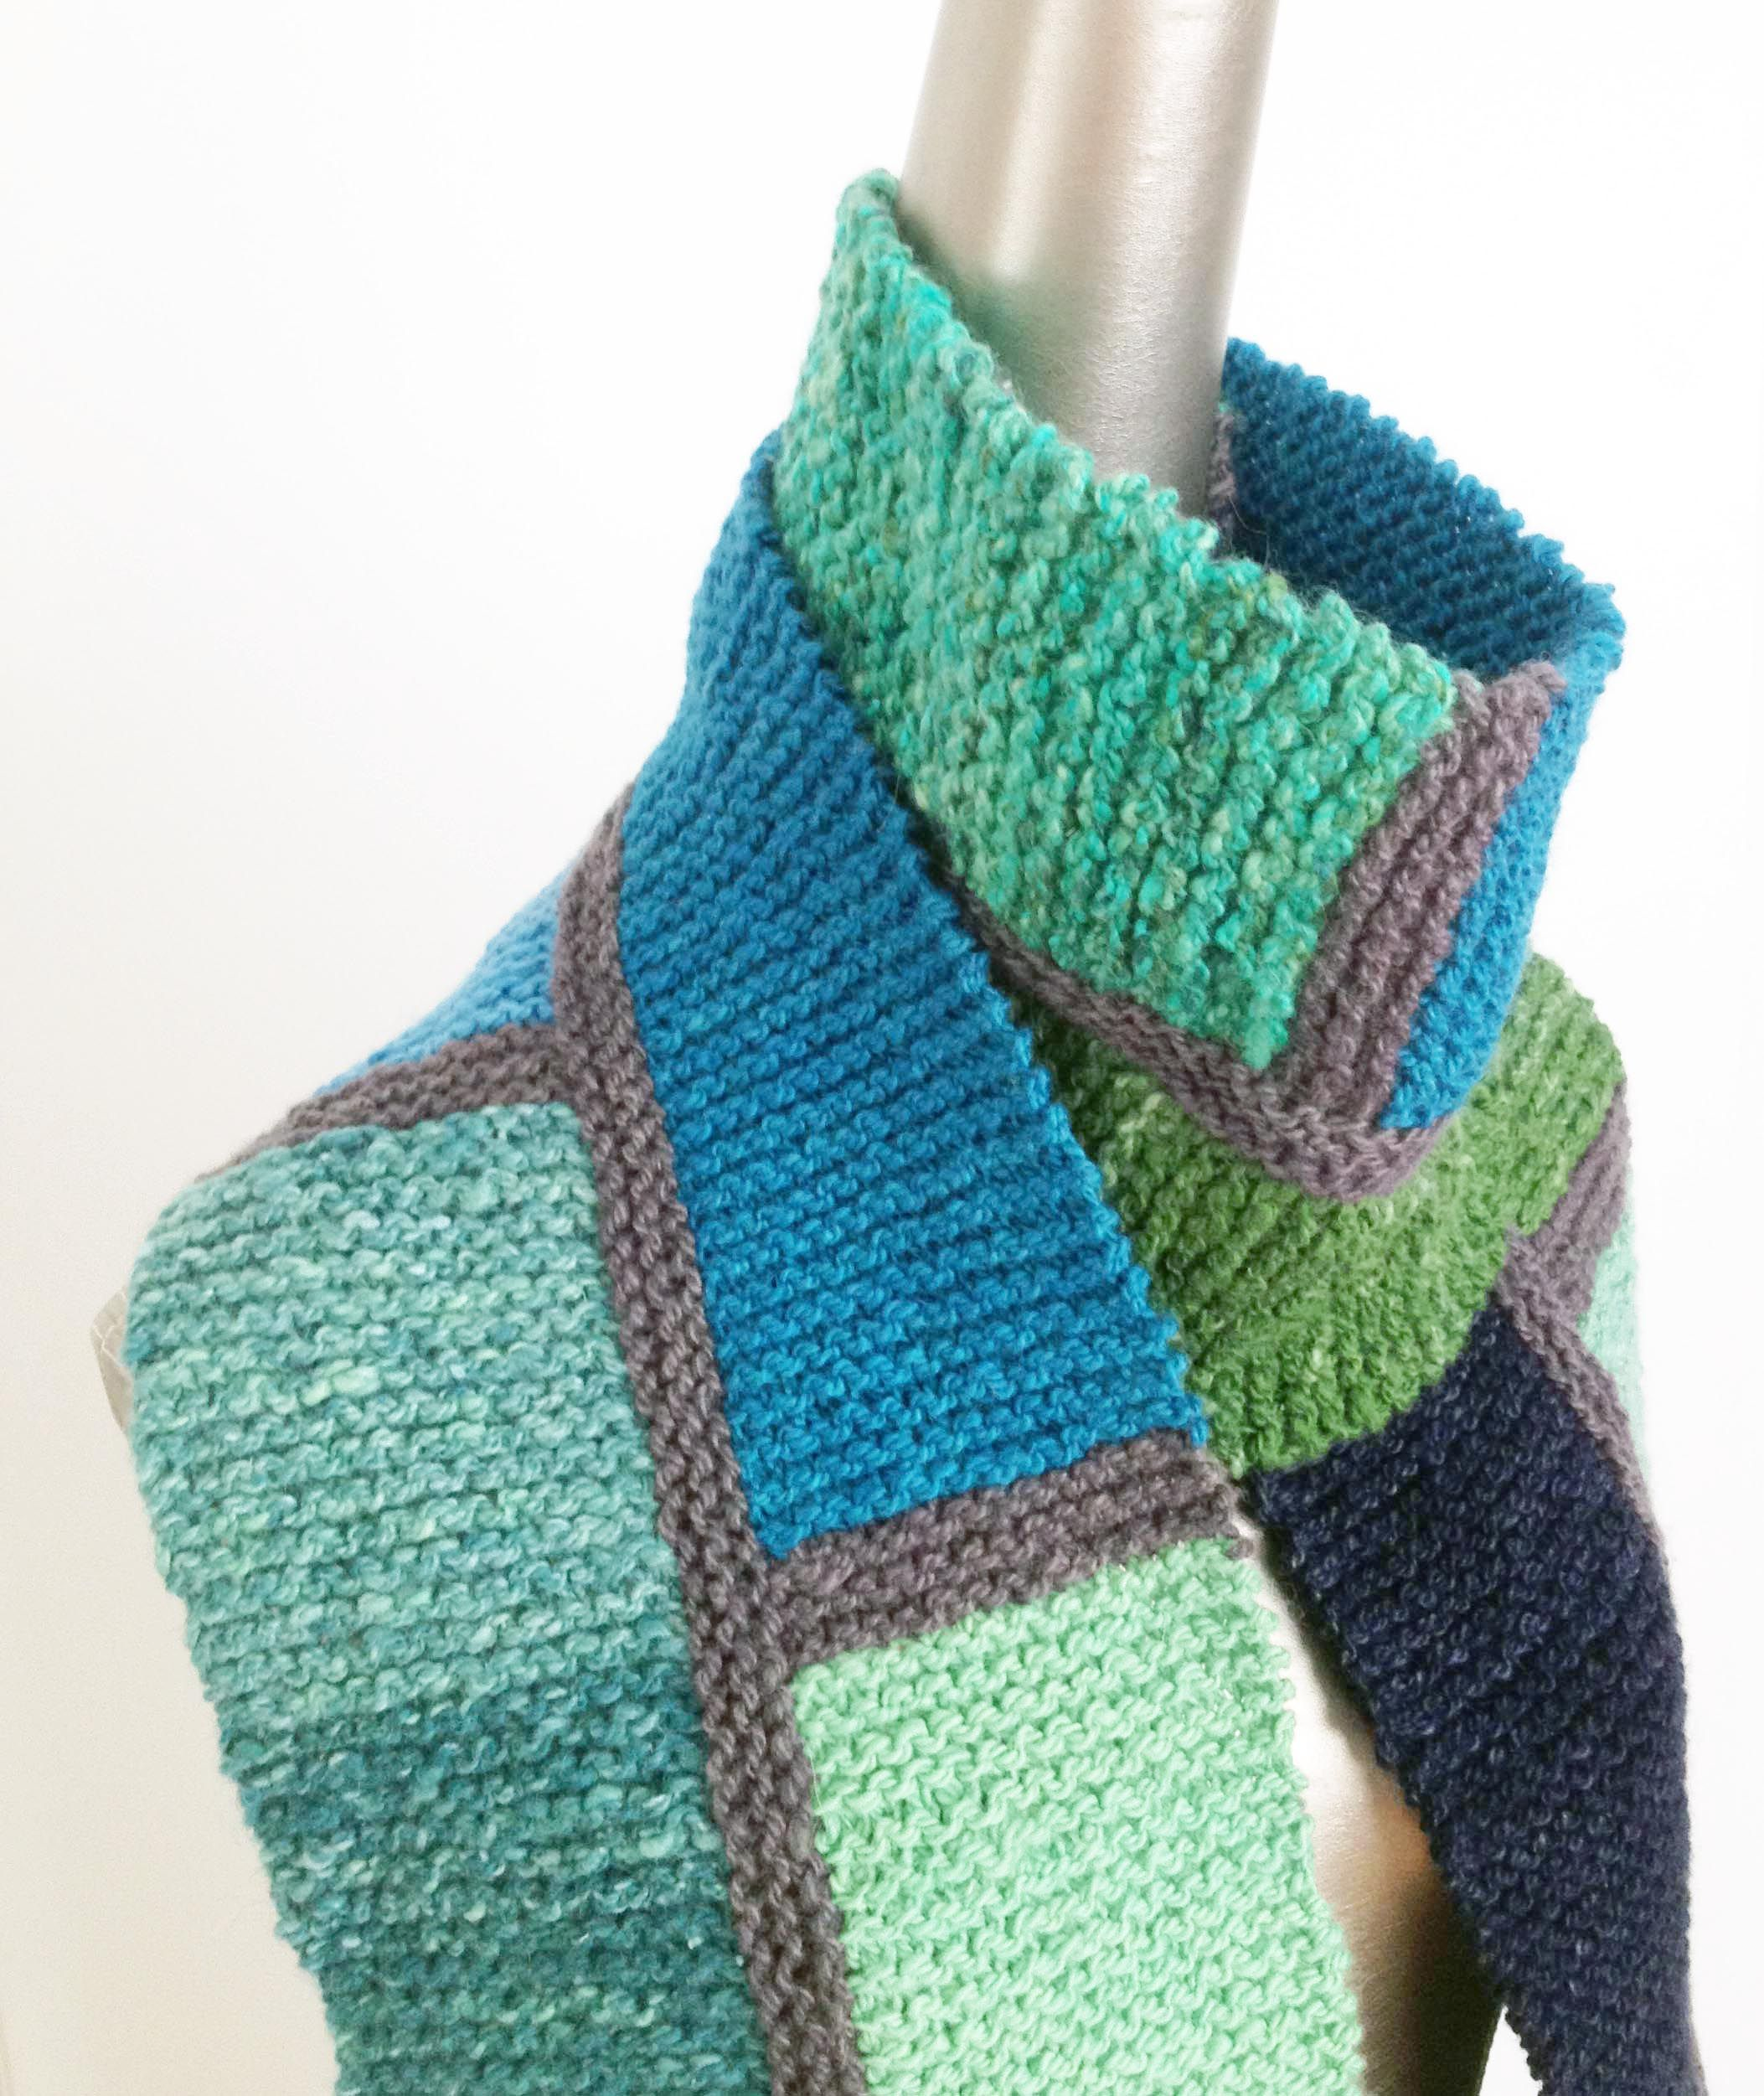 Colorblock scarf from infinite twist its a knitting thing mondrian color block scarf from infinite twist bankloansurffo Image collections